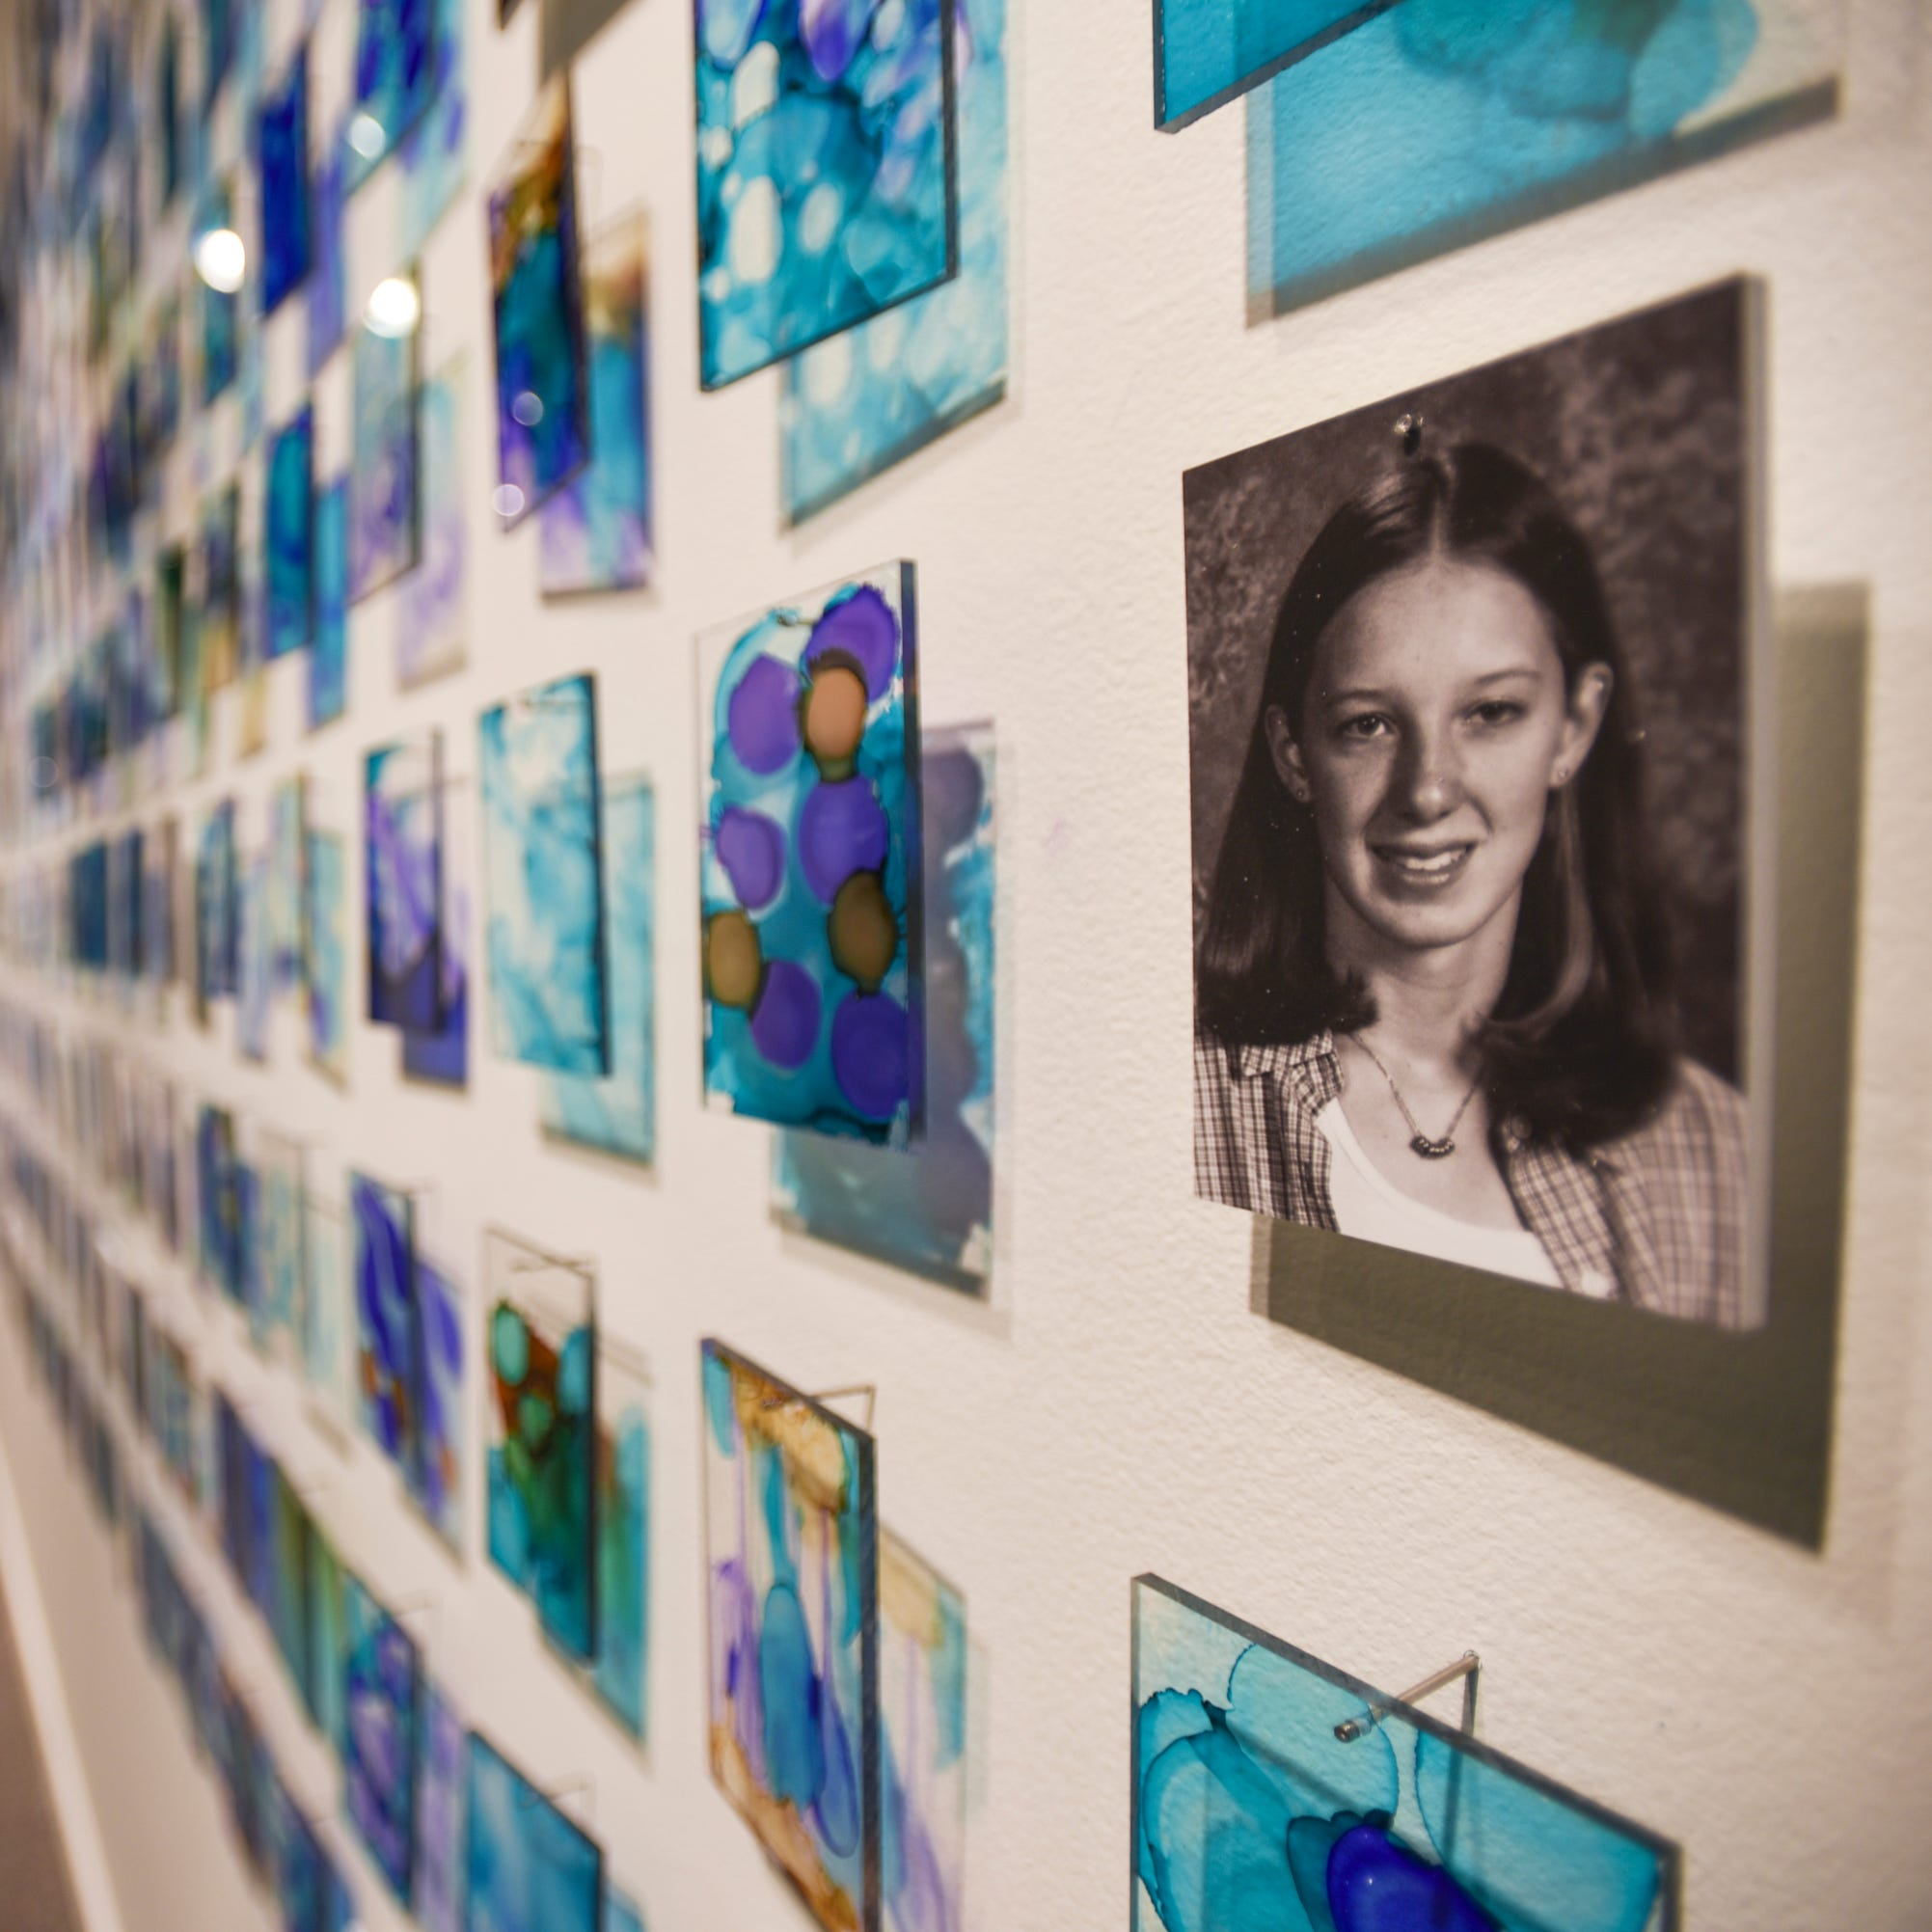 New MSU Museum exhibit gives voice, control to the hundreds of survivors of Nassar's abuse